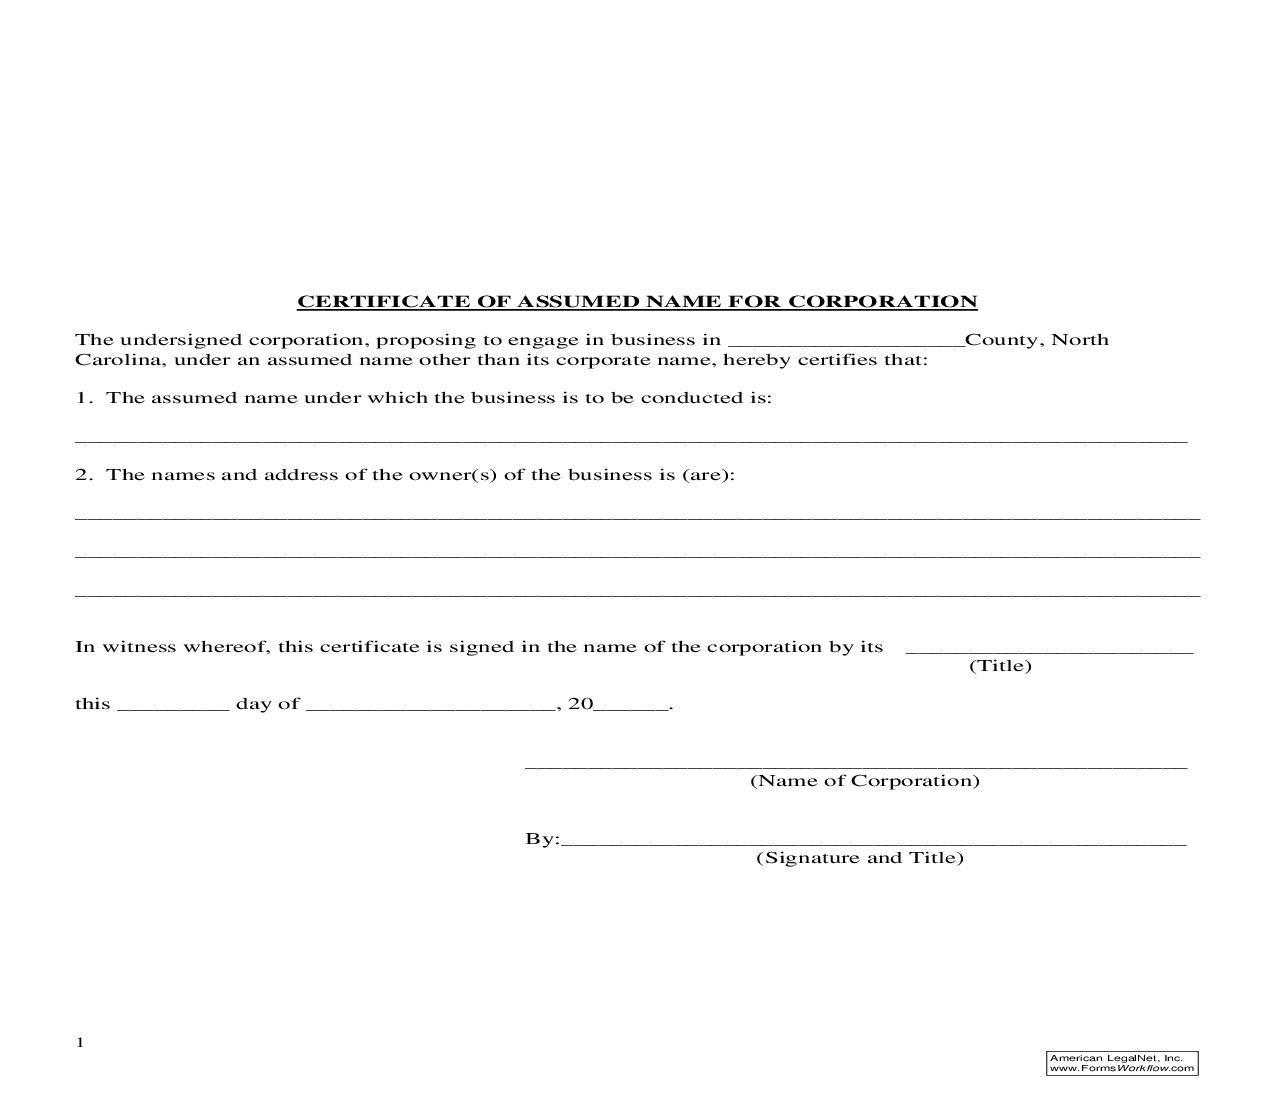 Certificate Of Assumed Name For Corporation | Pdf Fpdf Doc Docx | North Carolina